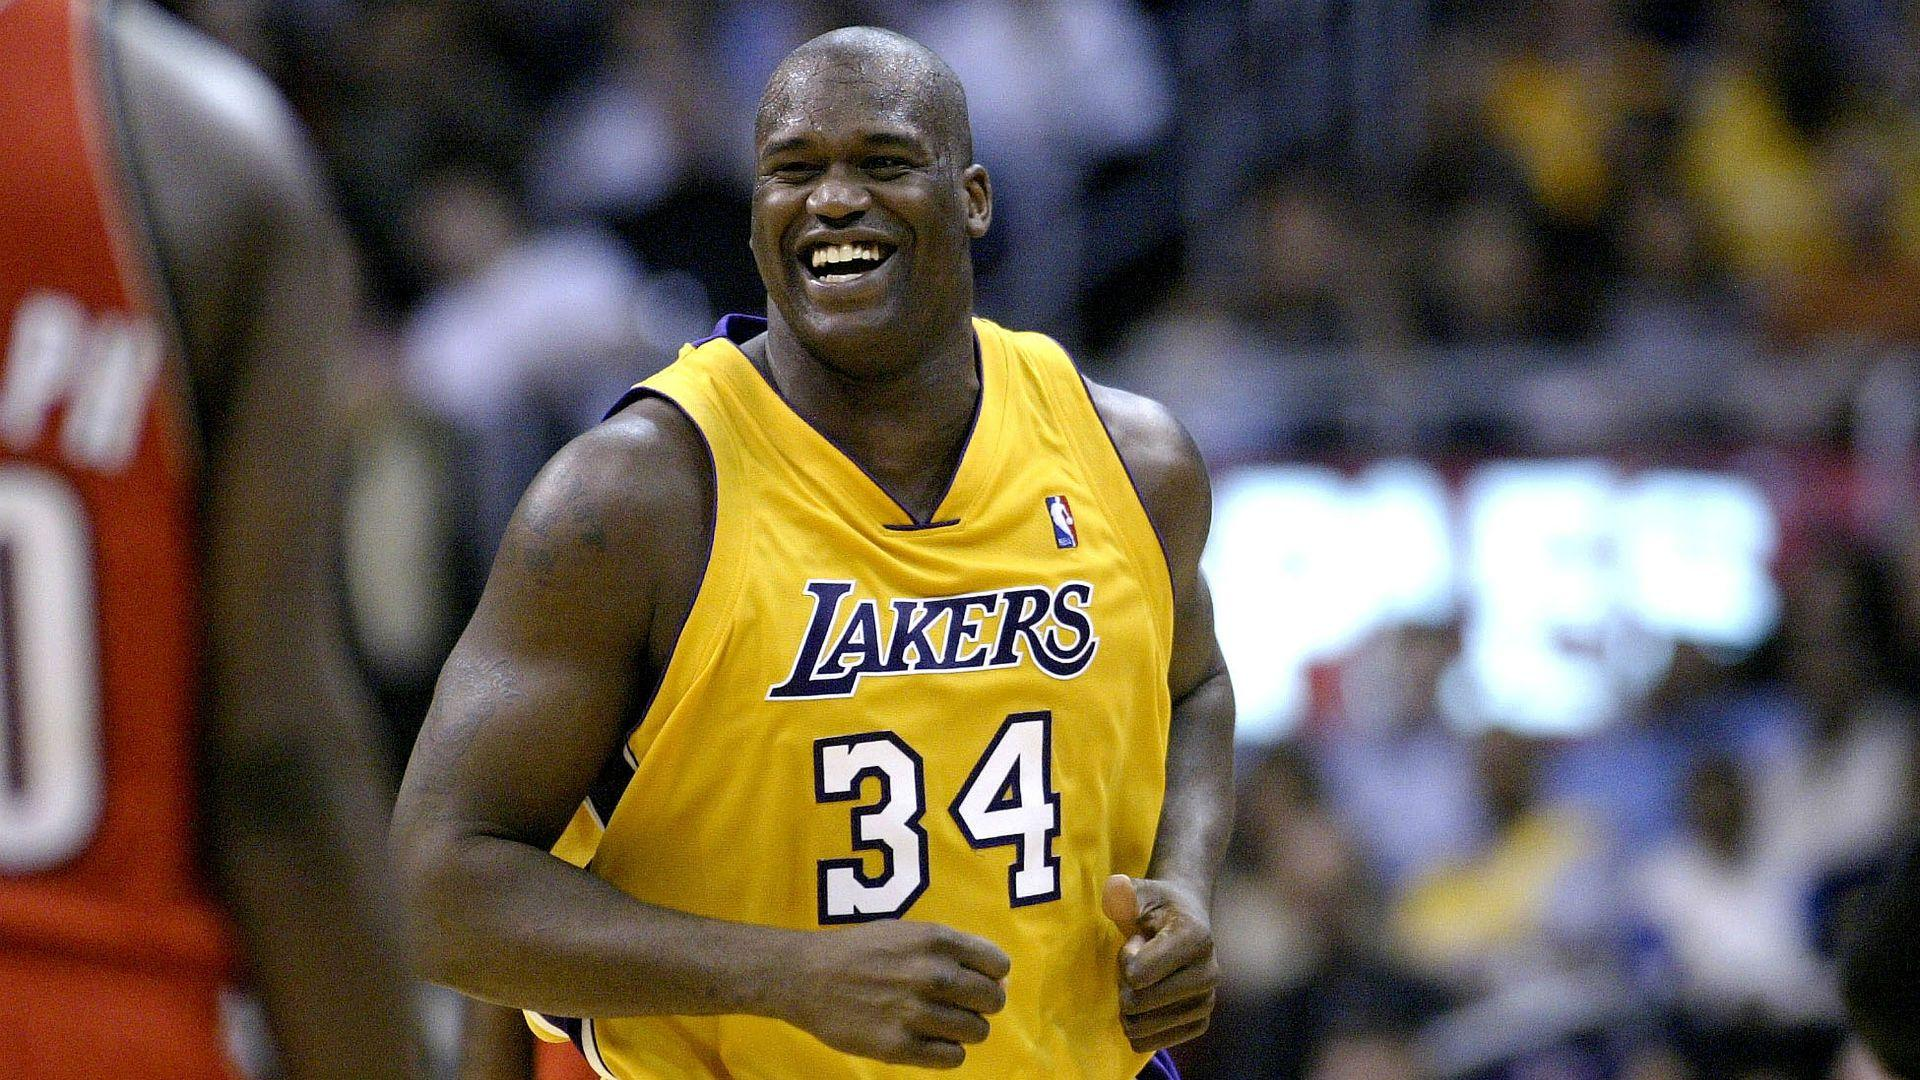 Shaquille O'Neal's son says his dad would be even more dominant if